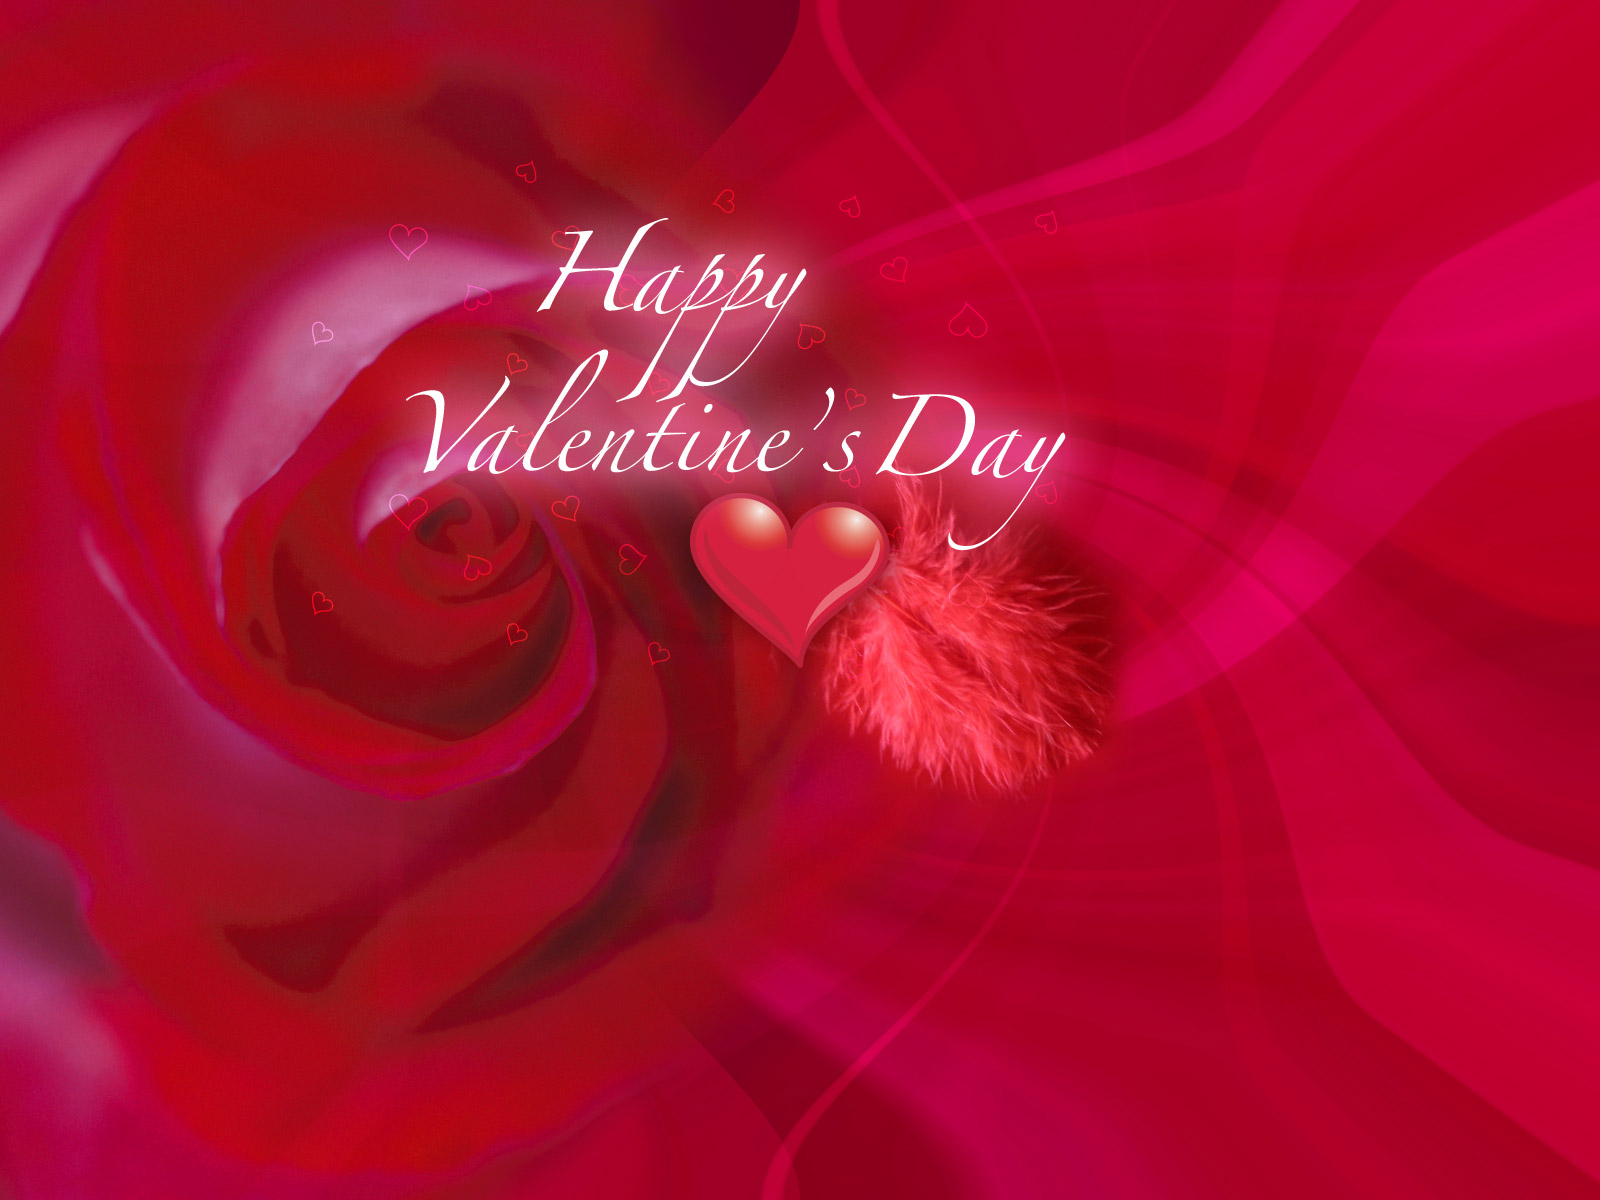 Valentine Images Free Download Wallpaper